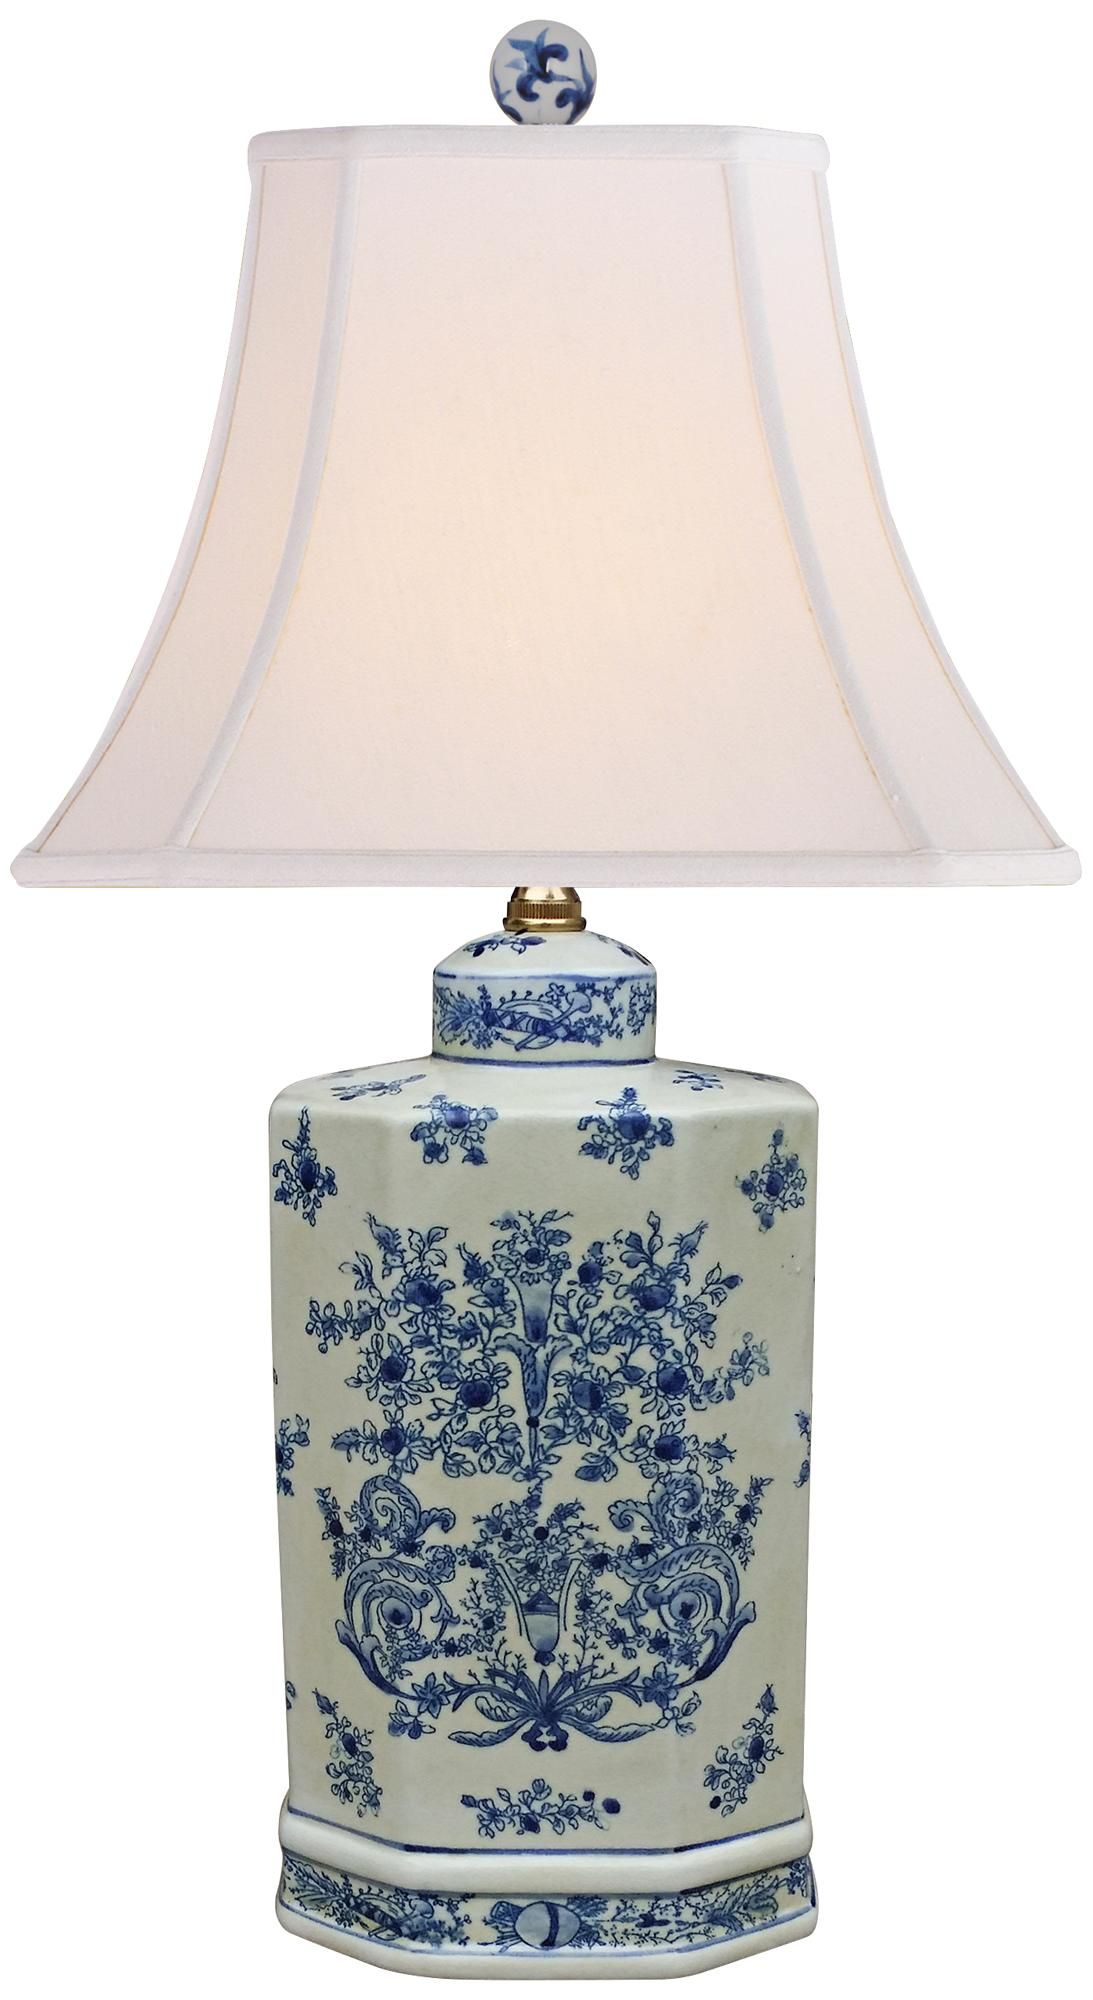 Calvinshire Blue And White Porcelain Table Lamp 9m004 Lamps Plus Lamp Jar Table Lamp Blue Table Lamp